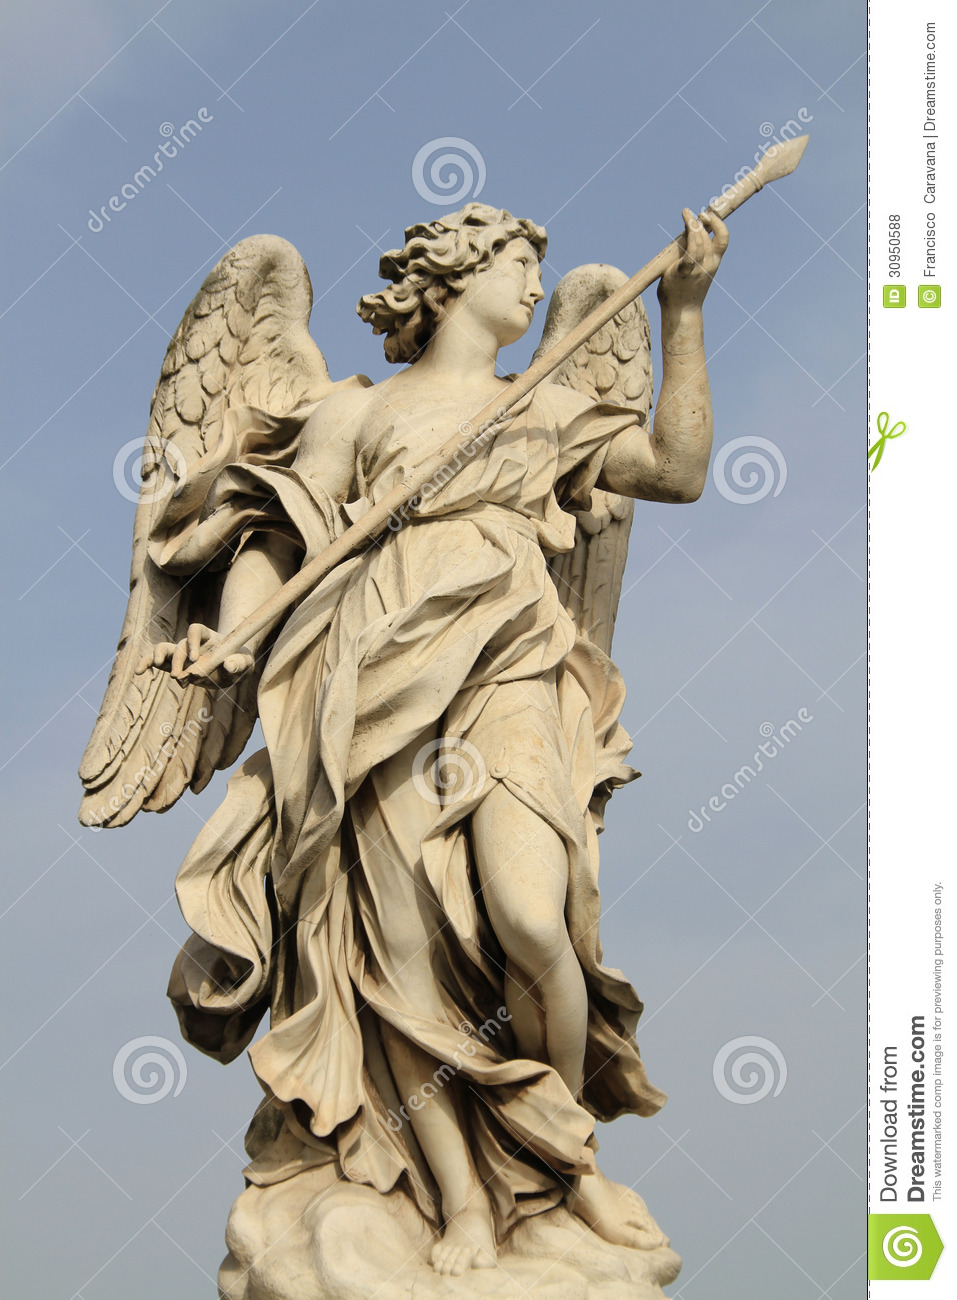 Prayer to the 7 Archangels of Heaven Guardian Angels for